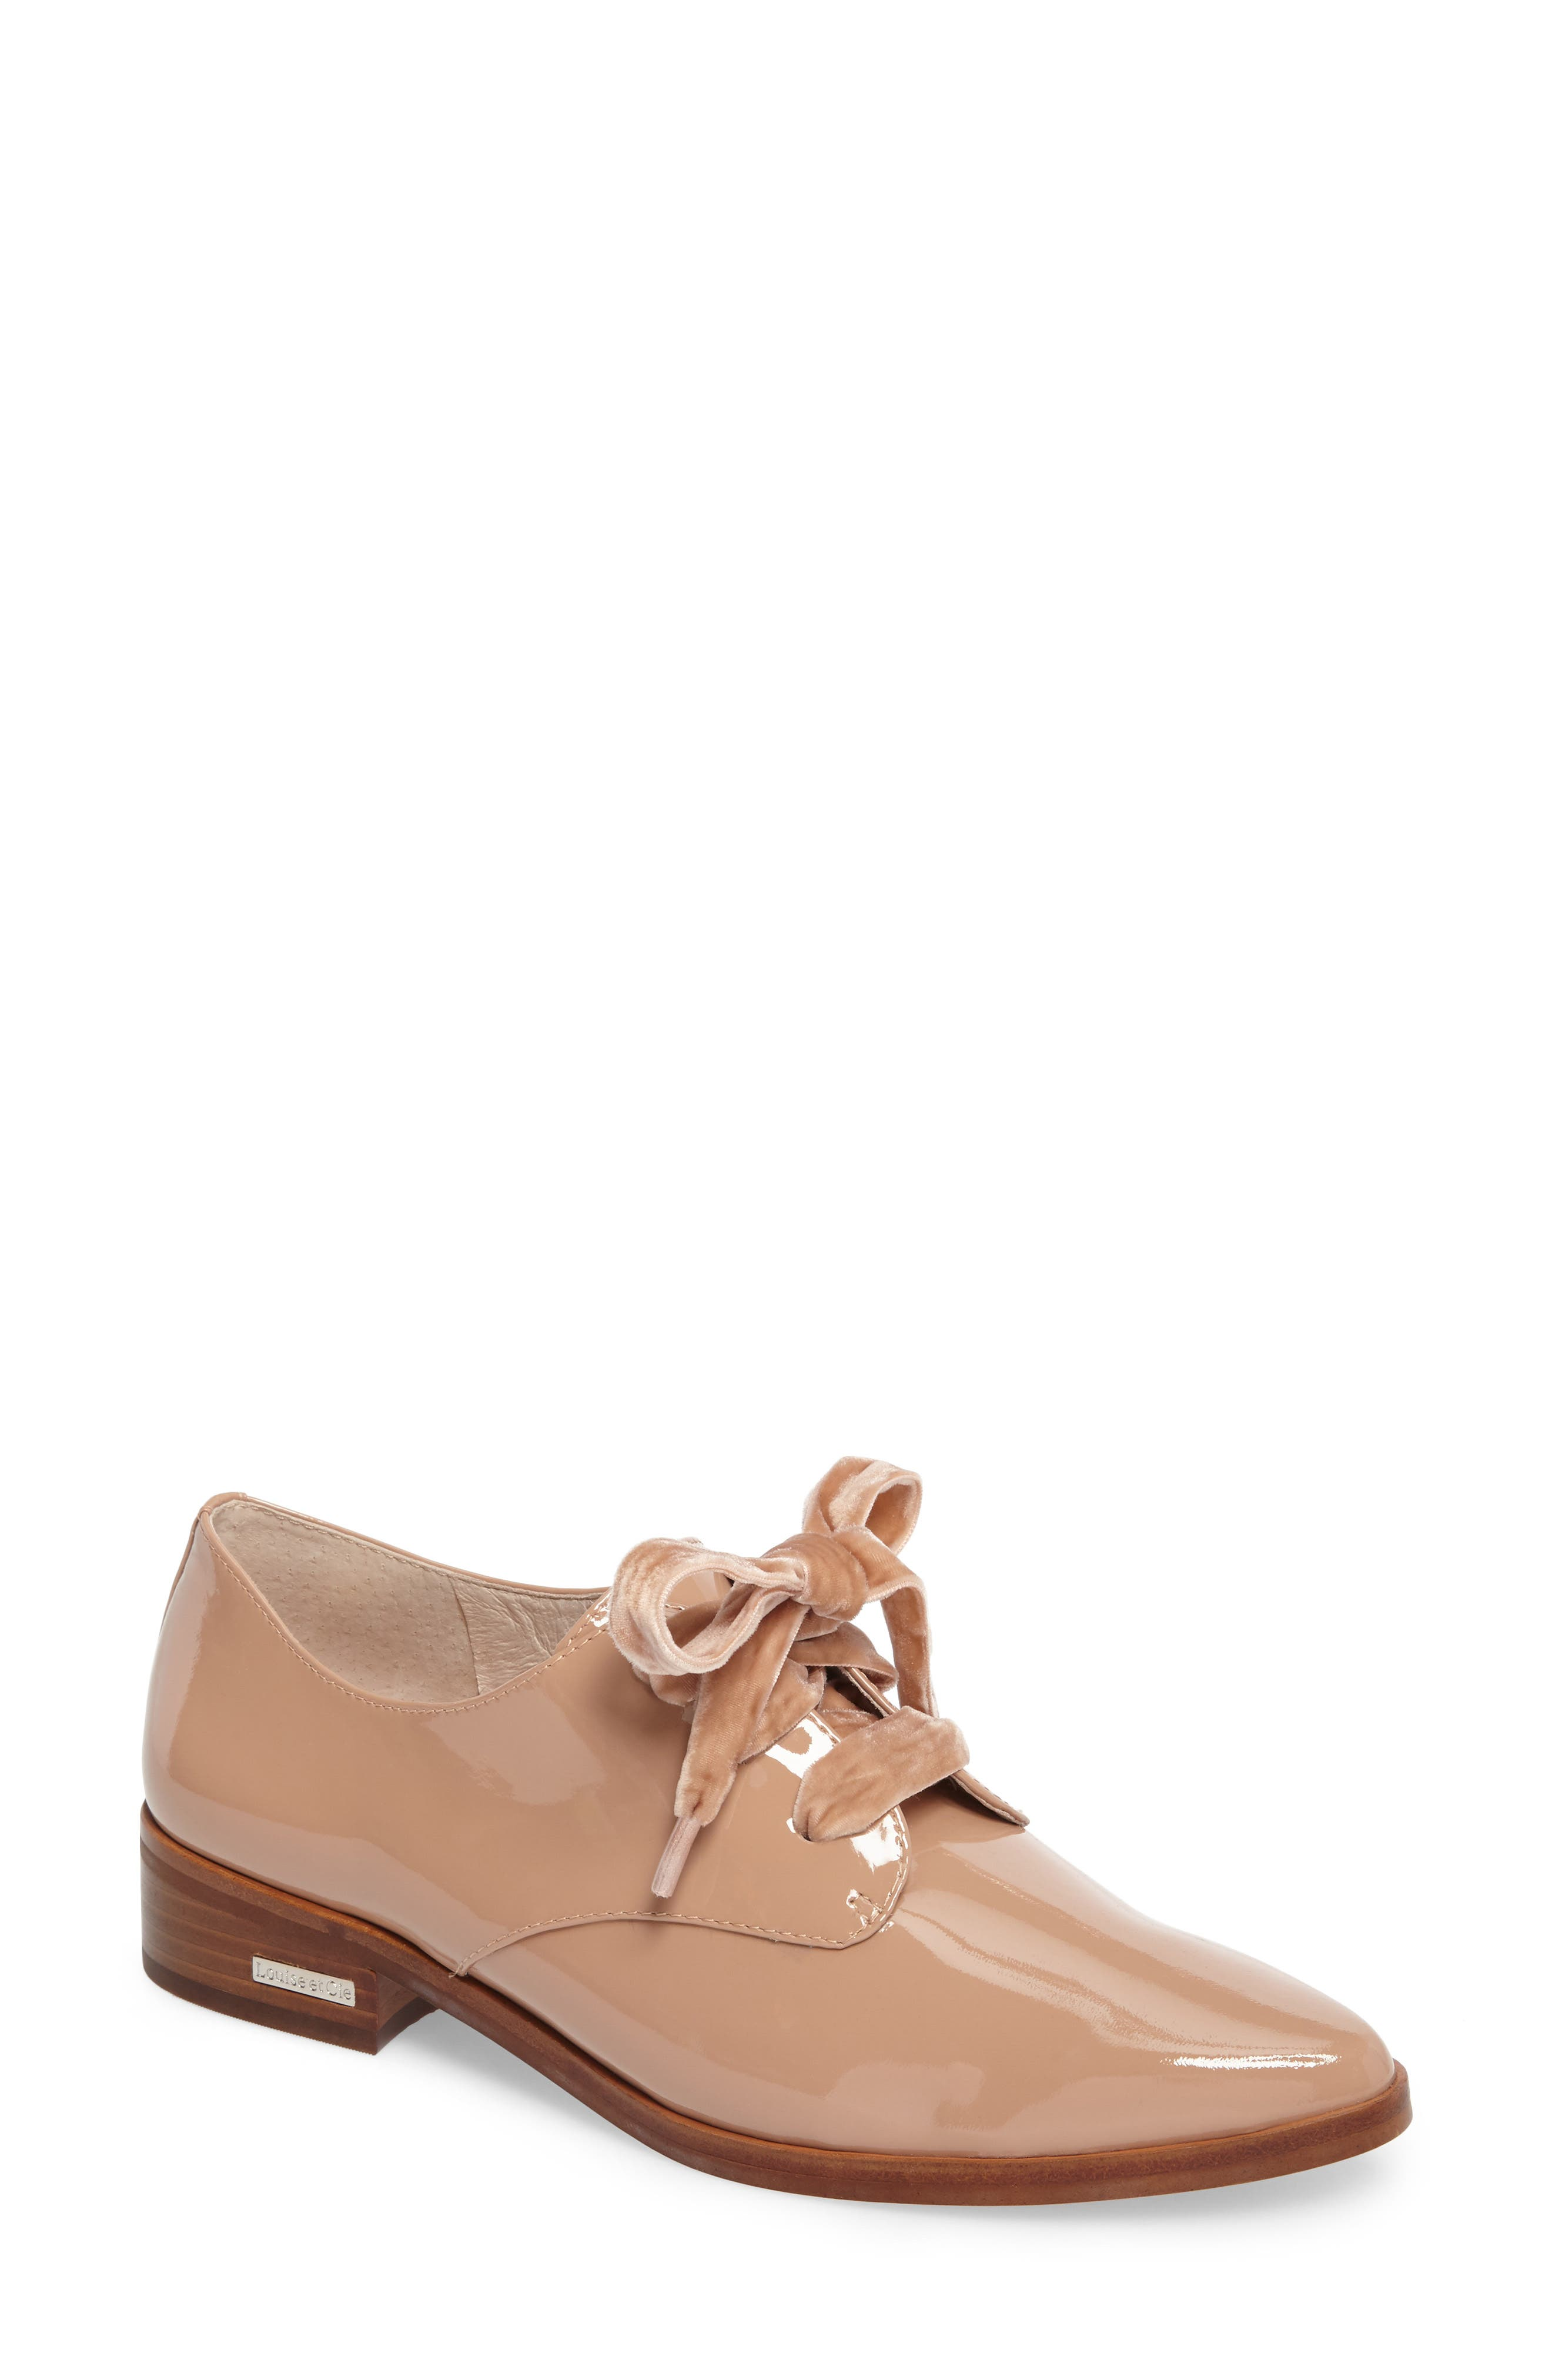 Alternate Image 1 Selected - Louise et Cie 'Adwin' Almond Toe Oxford (Women) (Nordstrom Exclusive)